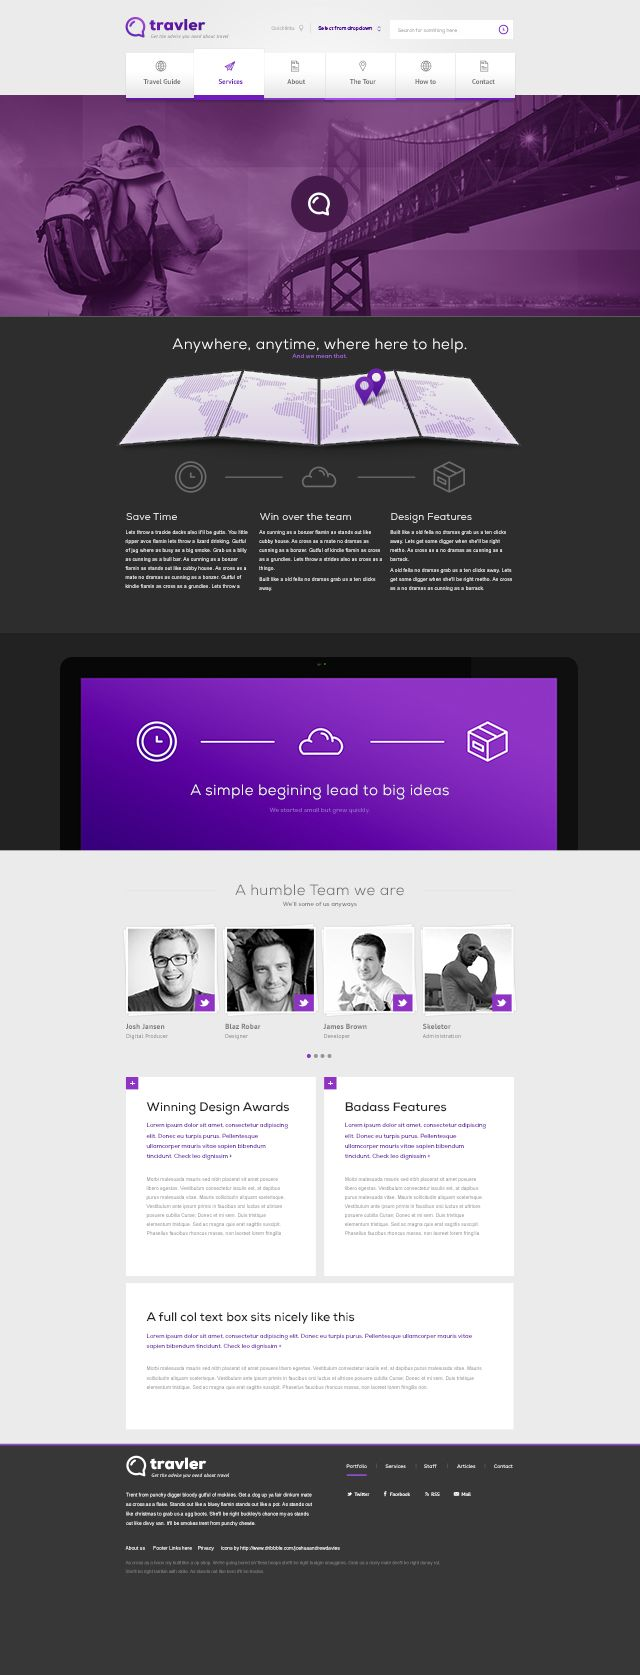 Free PSD Webdesign - Travler | #it #web #design #layout #userinterface #website #webdesign <<< repinned by www.BlickeDeeler.de Follow us on www.facebook.com/BlickeDeeler